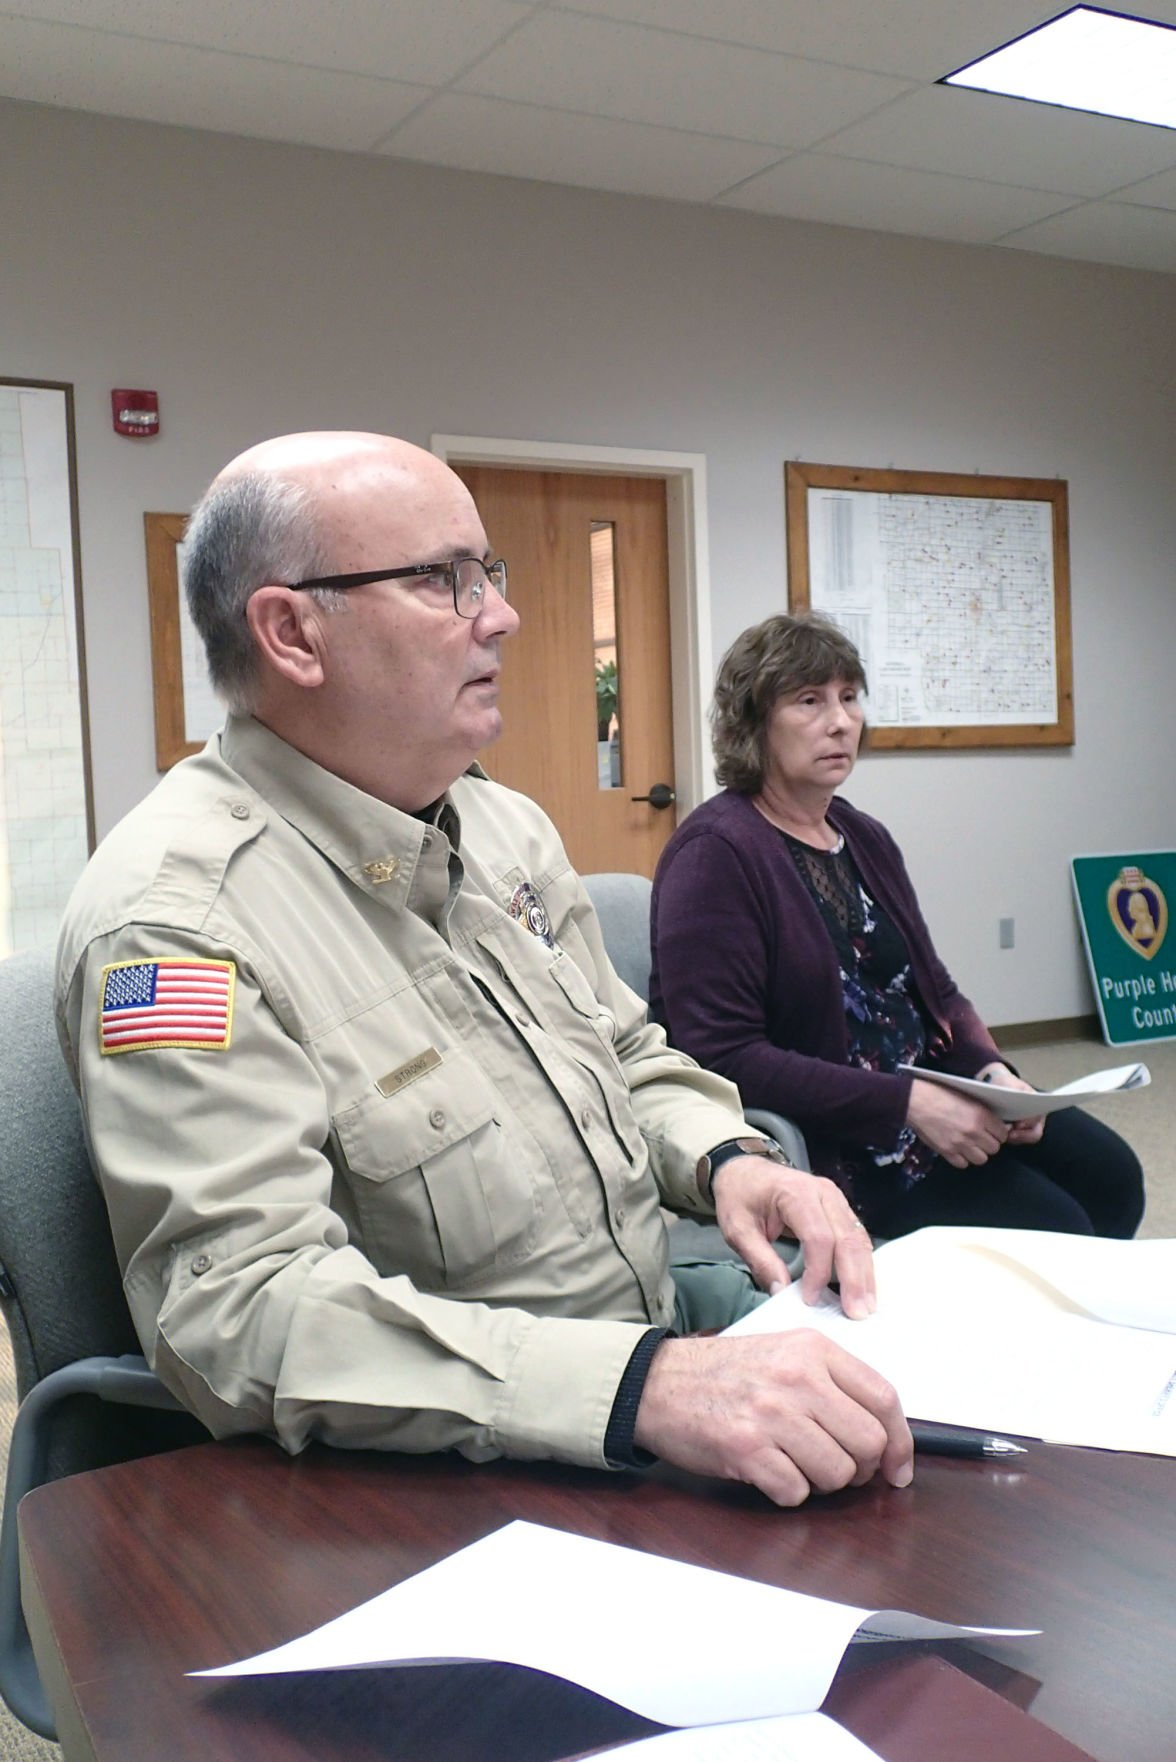 Jail fee ruling likely to impact county | News | Maryville